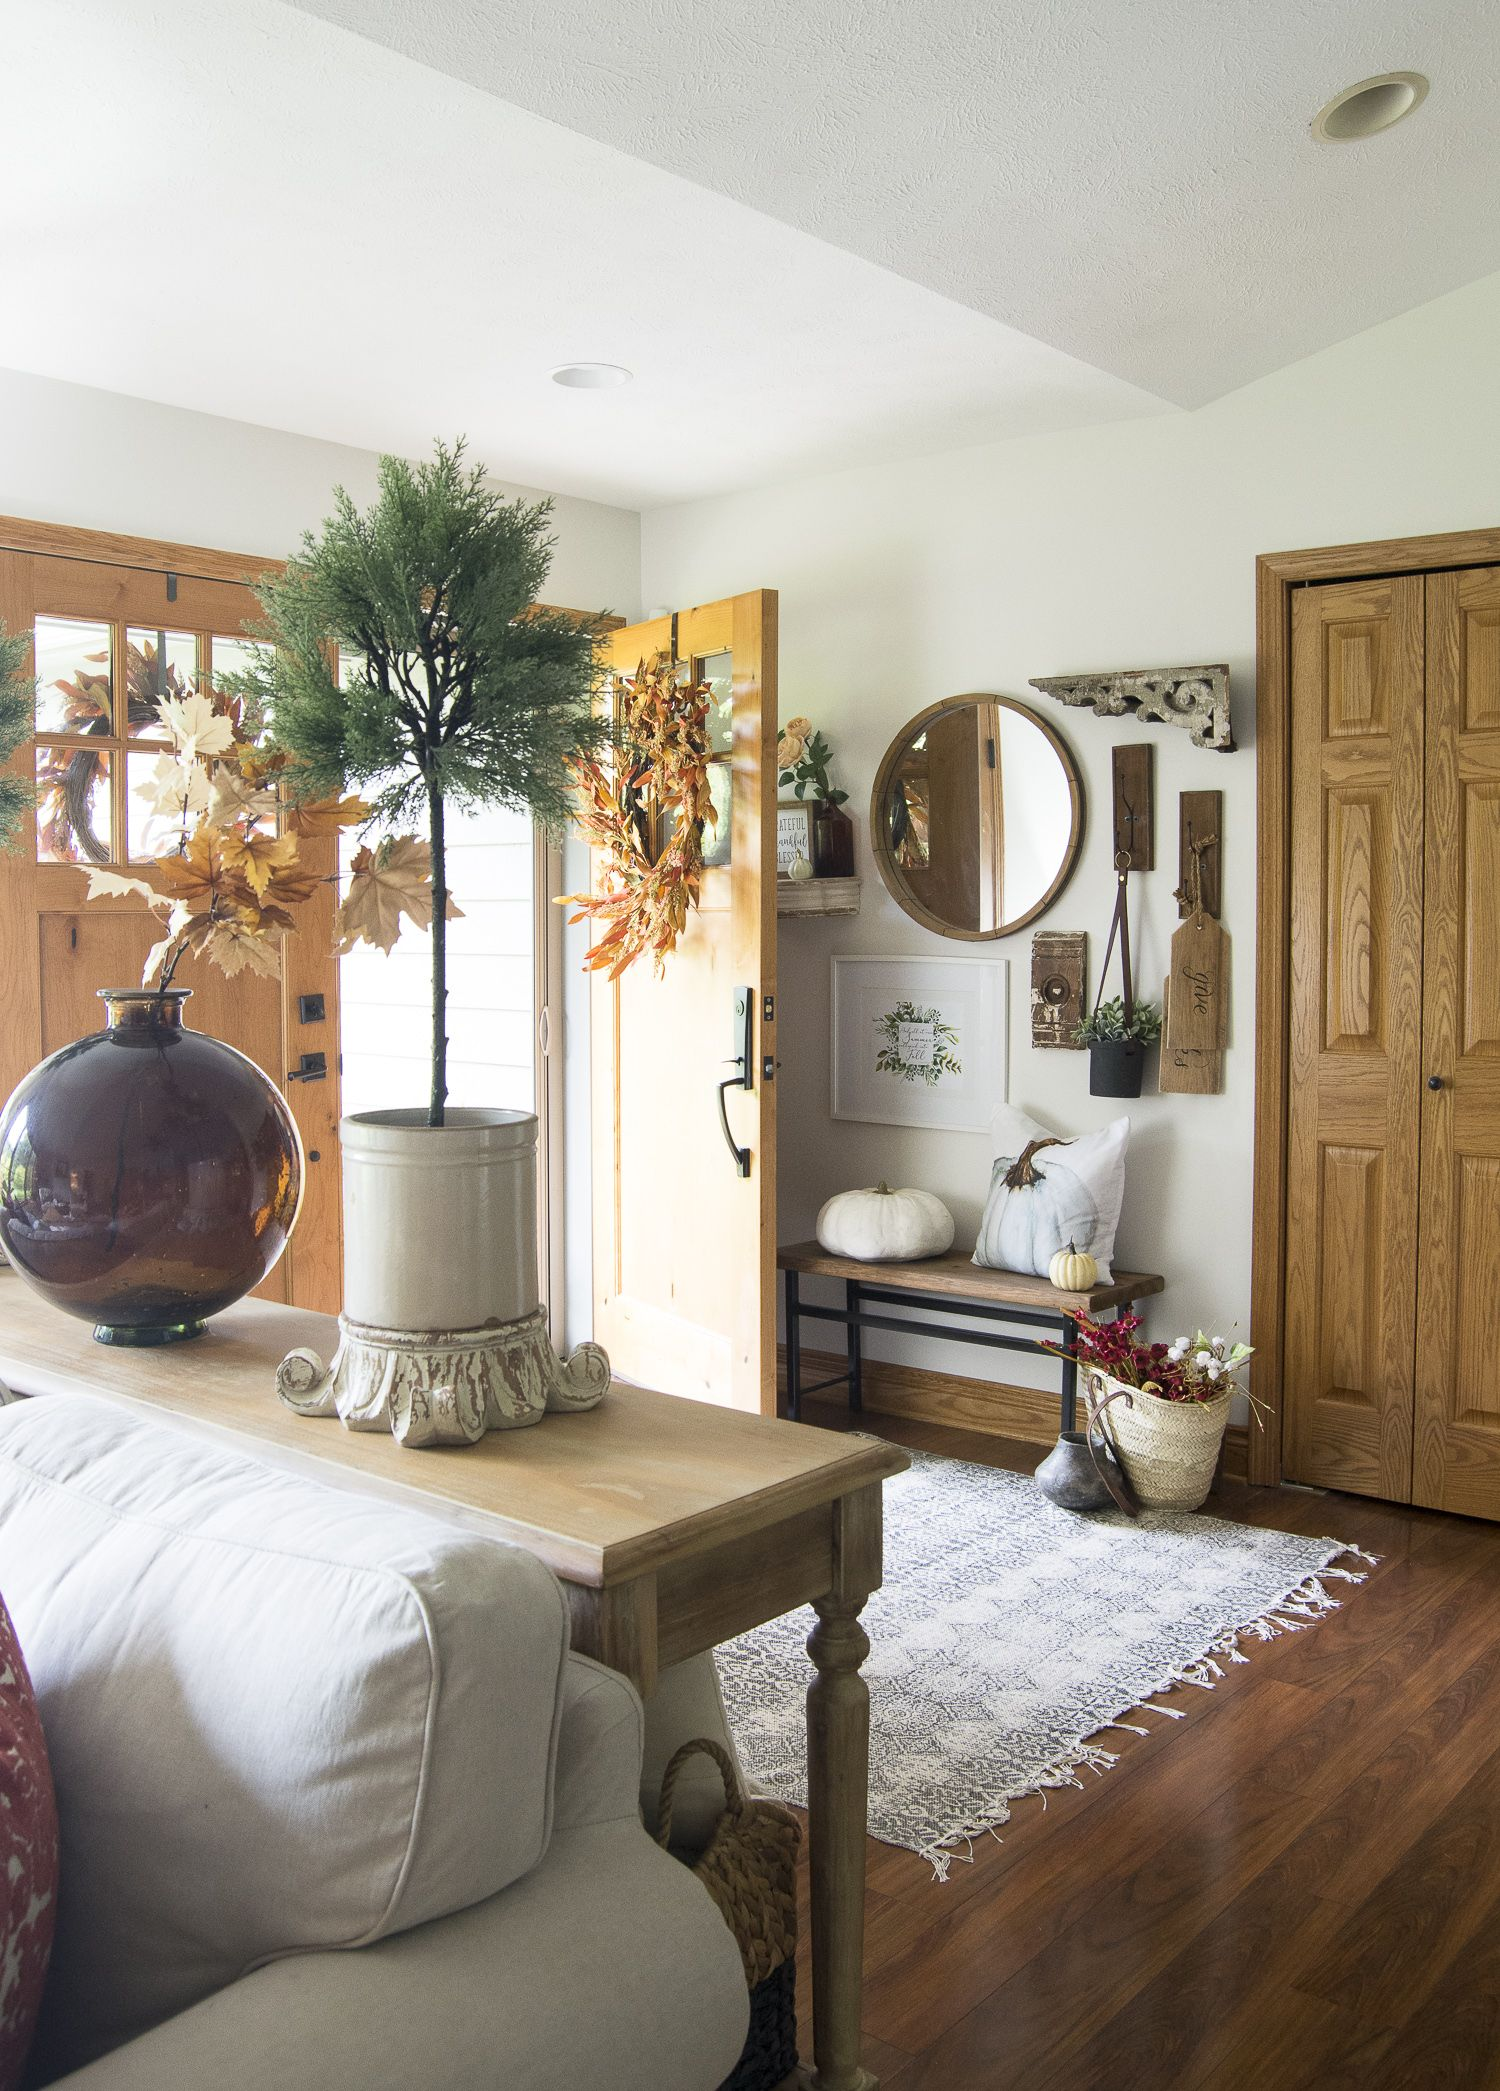 Simple Porch & Entryway Fall Decor images